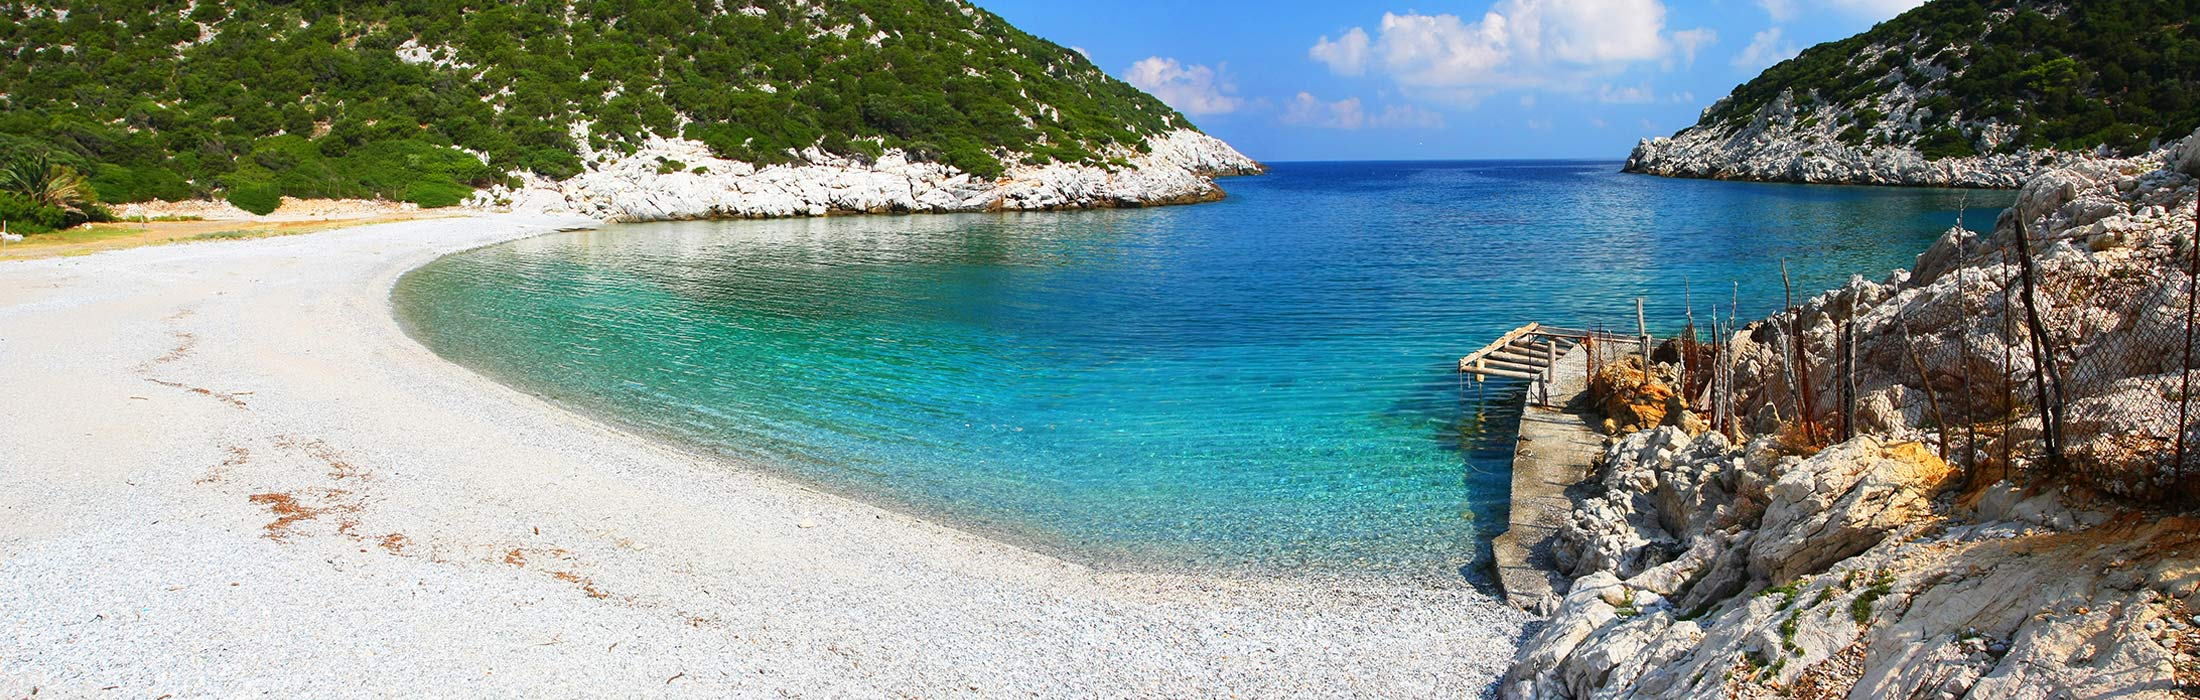 top yacht charter destinations mediterranean greece sporades skopelos main slider 2